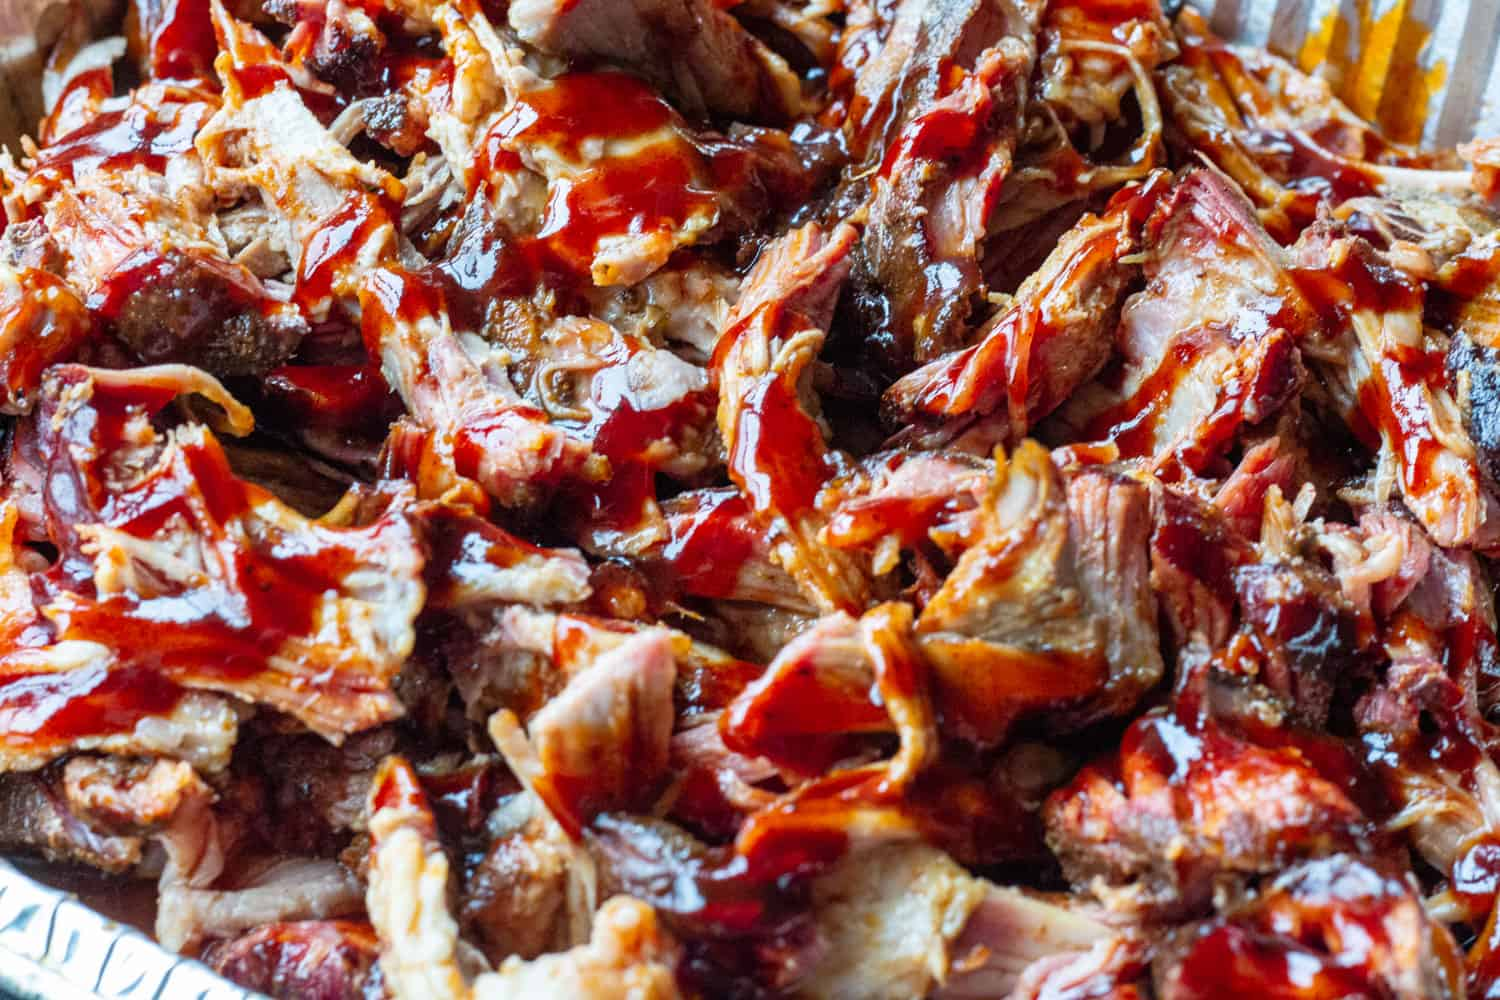 A close up tray of juicy pulled pork with shiny barbecue sauce.